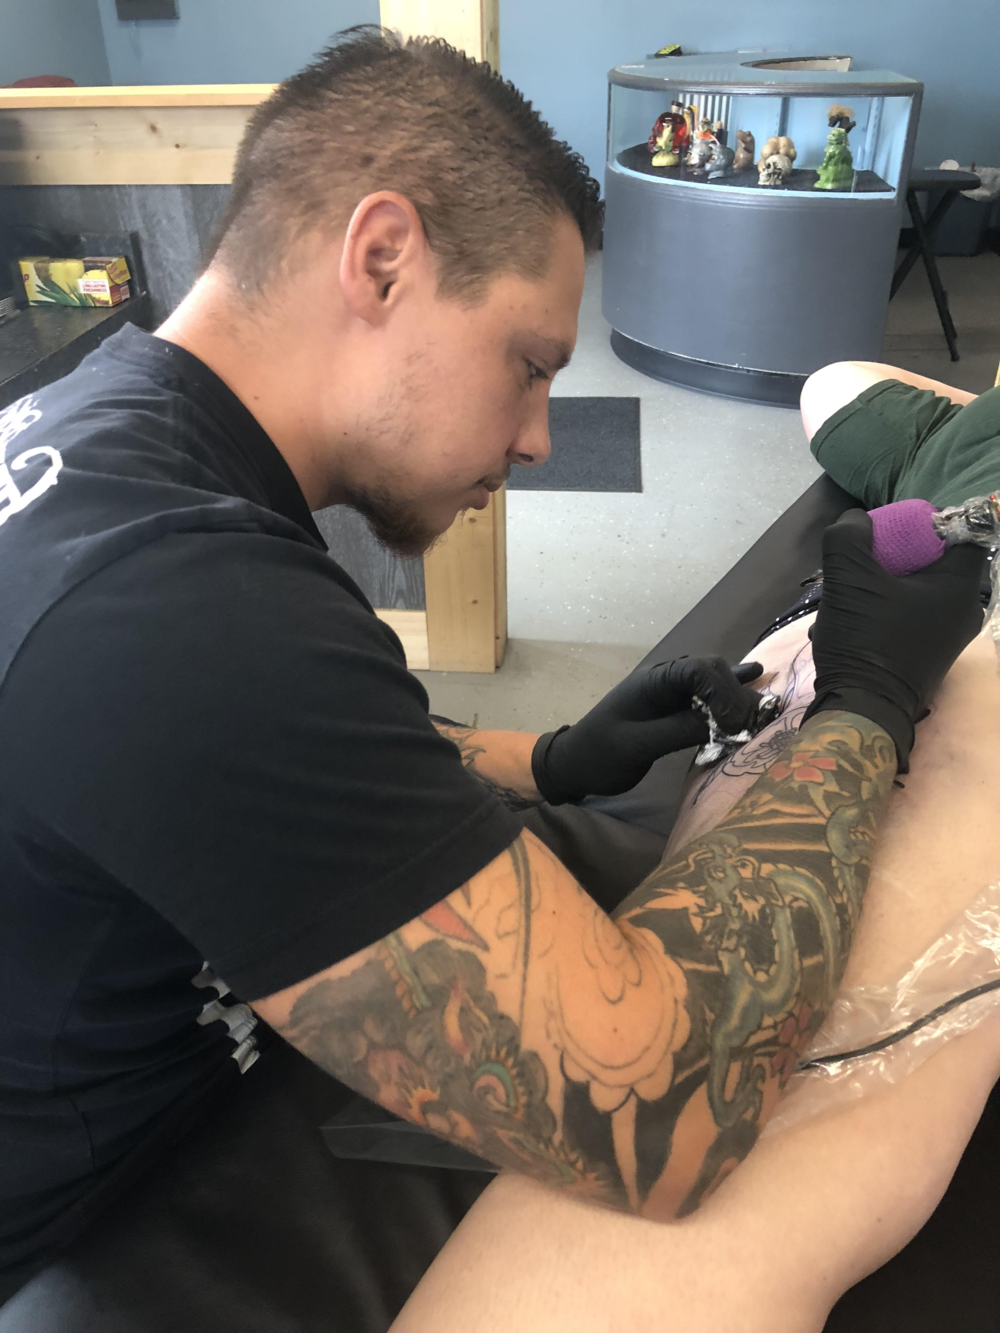 Bryon McVaney - Bryon is a versatile artist who loves doing all styles. He prefers mostly black and grey but really likes working with color as well. Click on his picture to see his work!